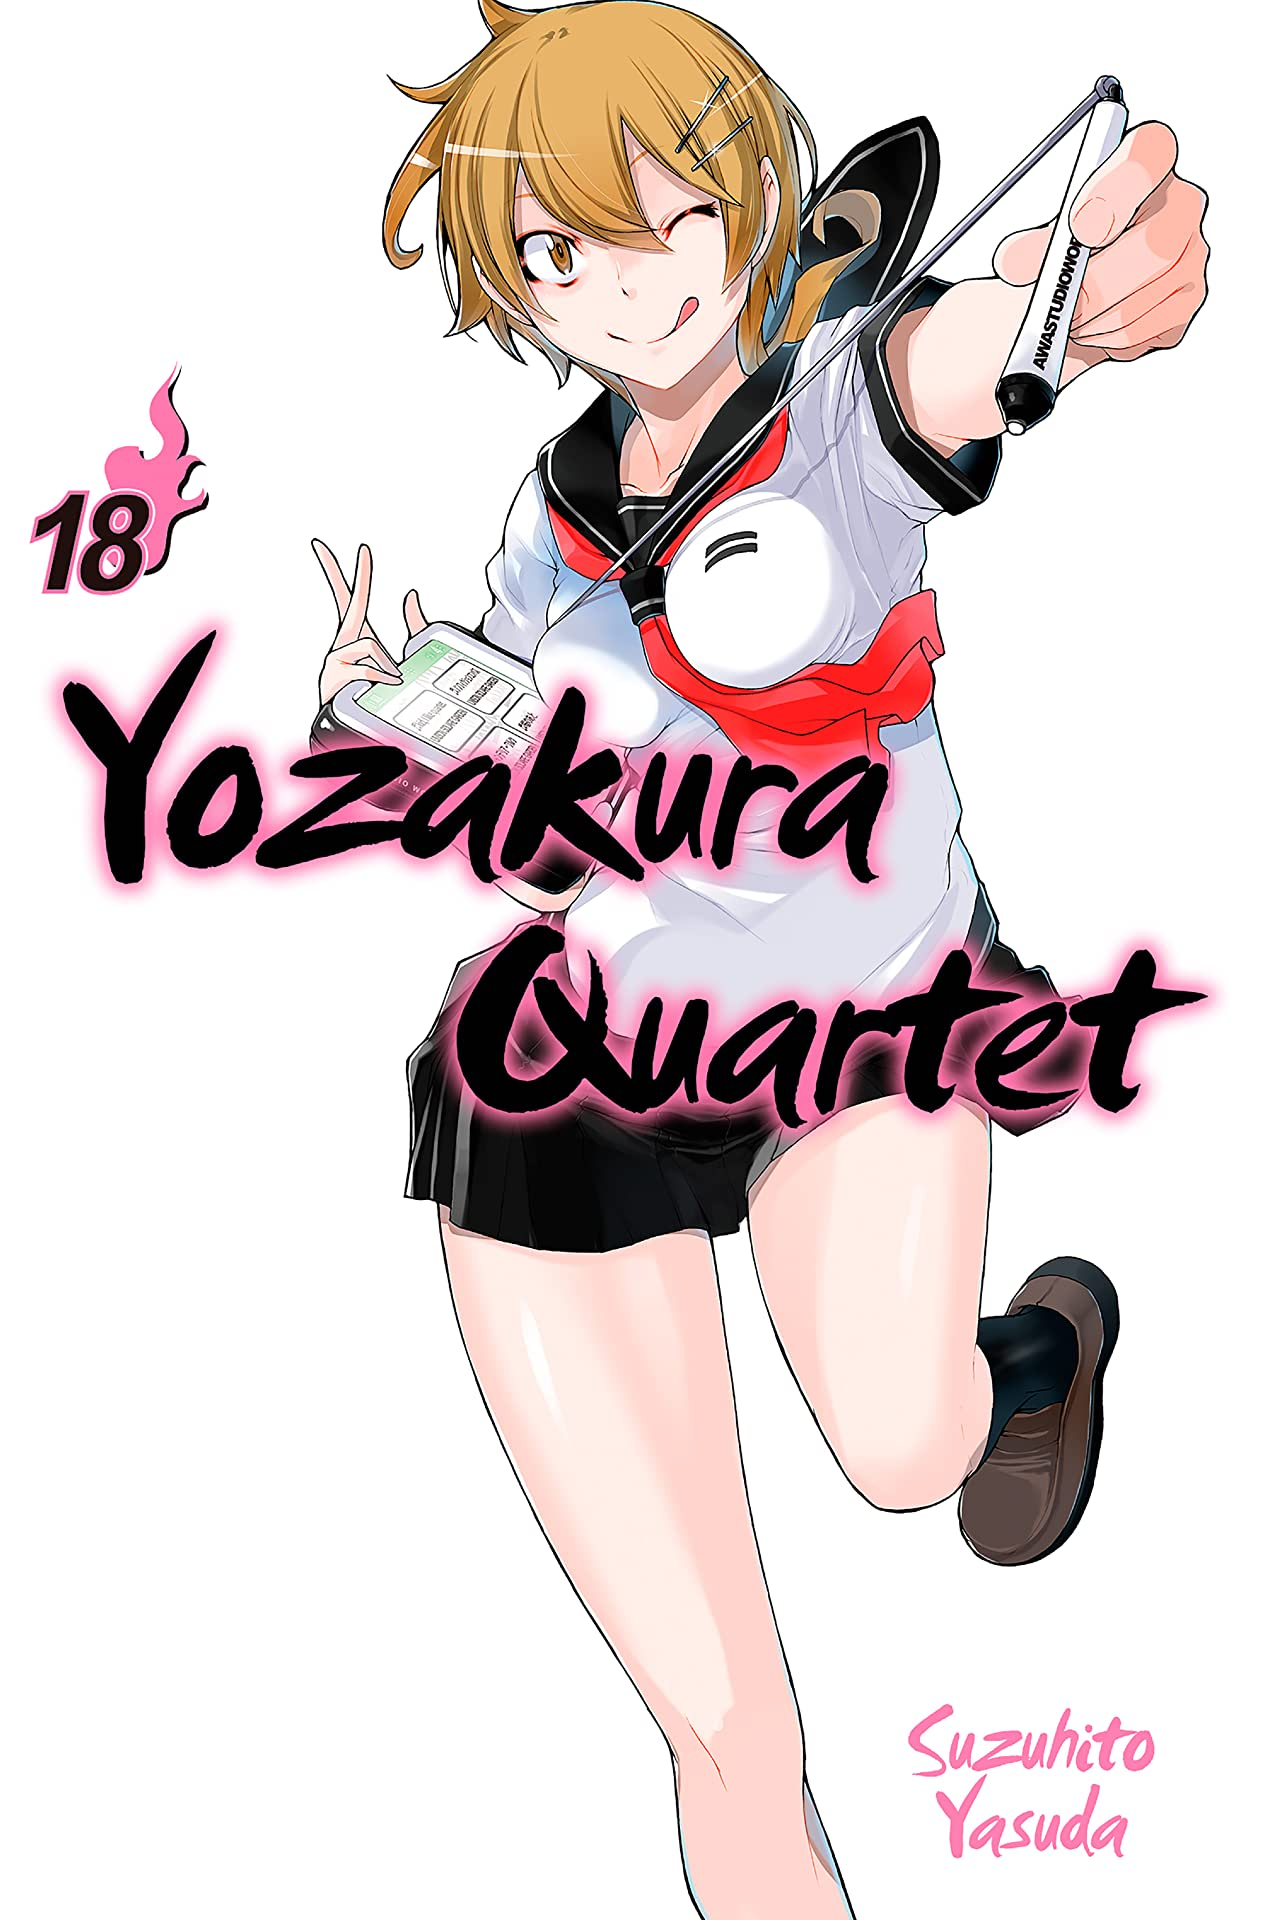 Yozakura Quartet Vol. 18